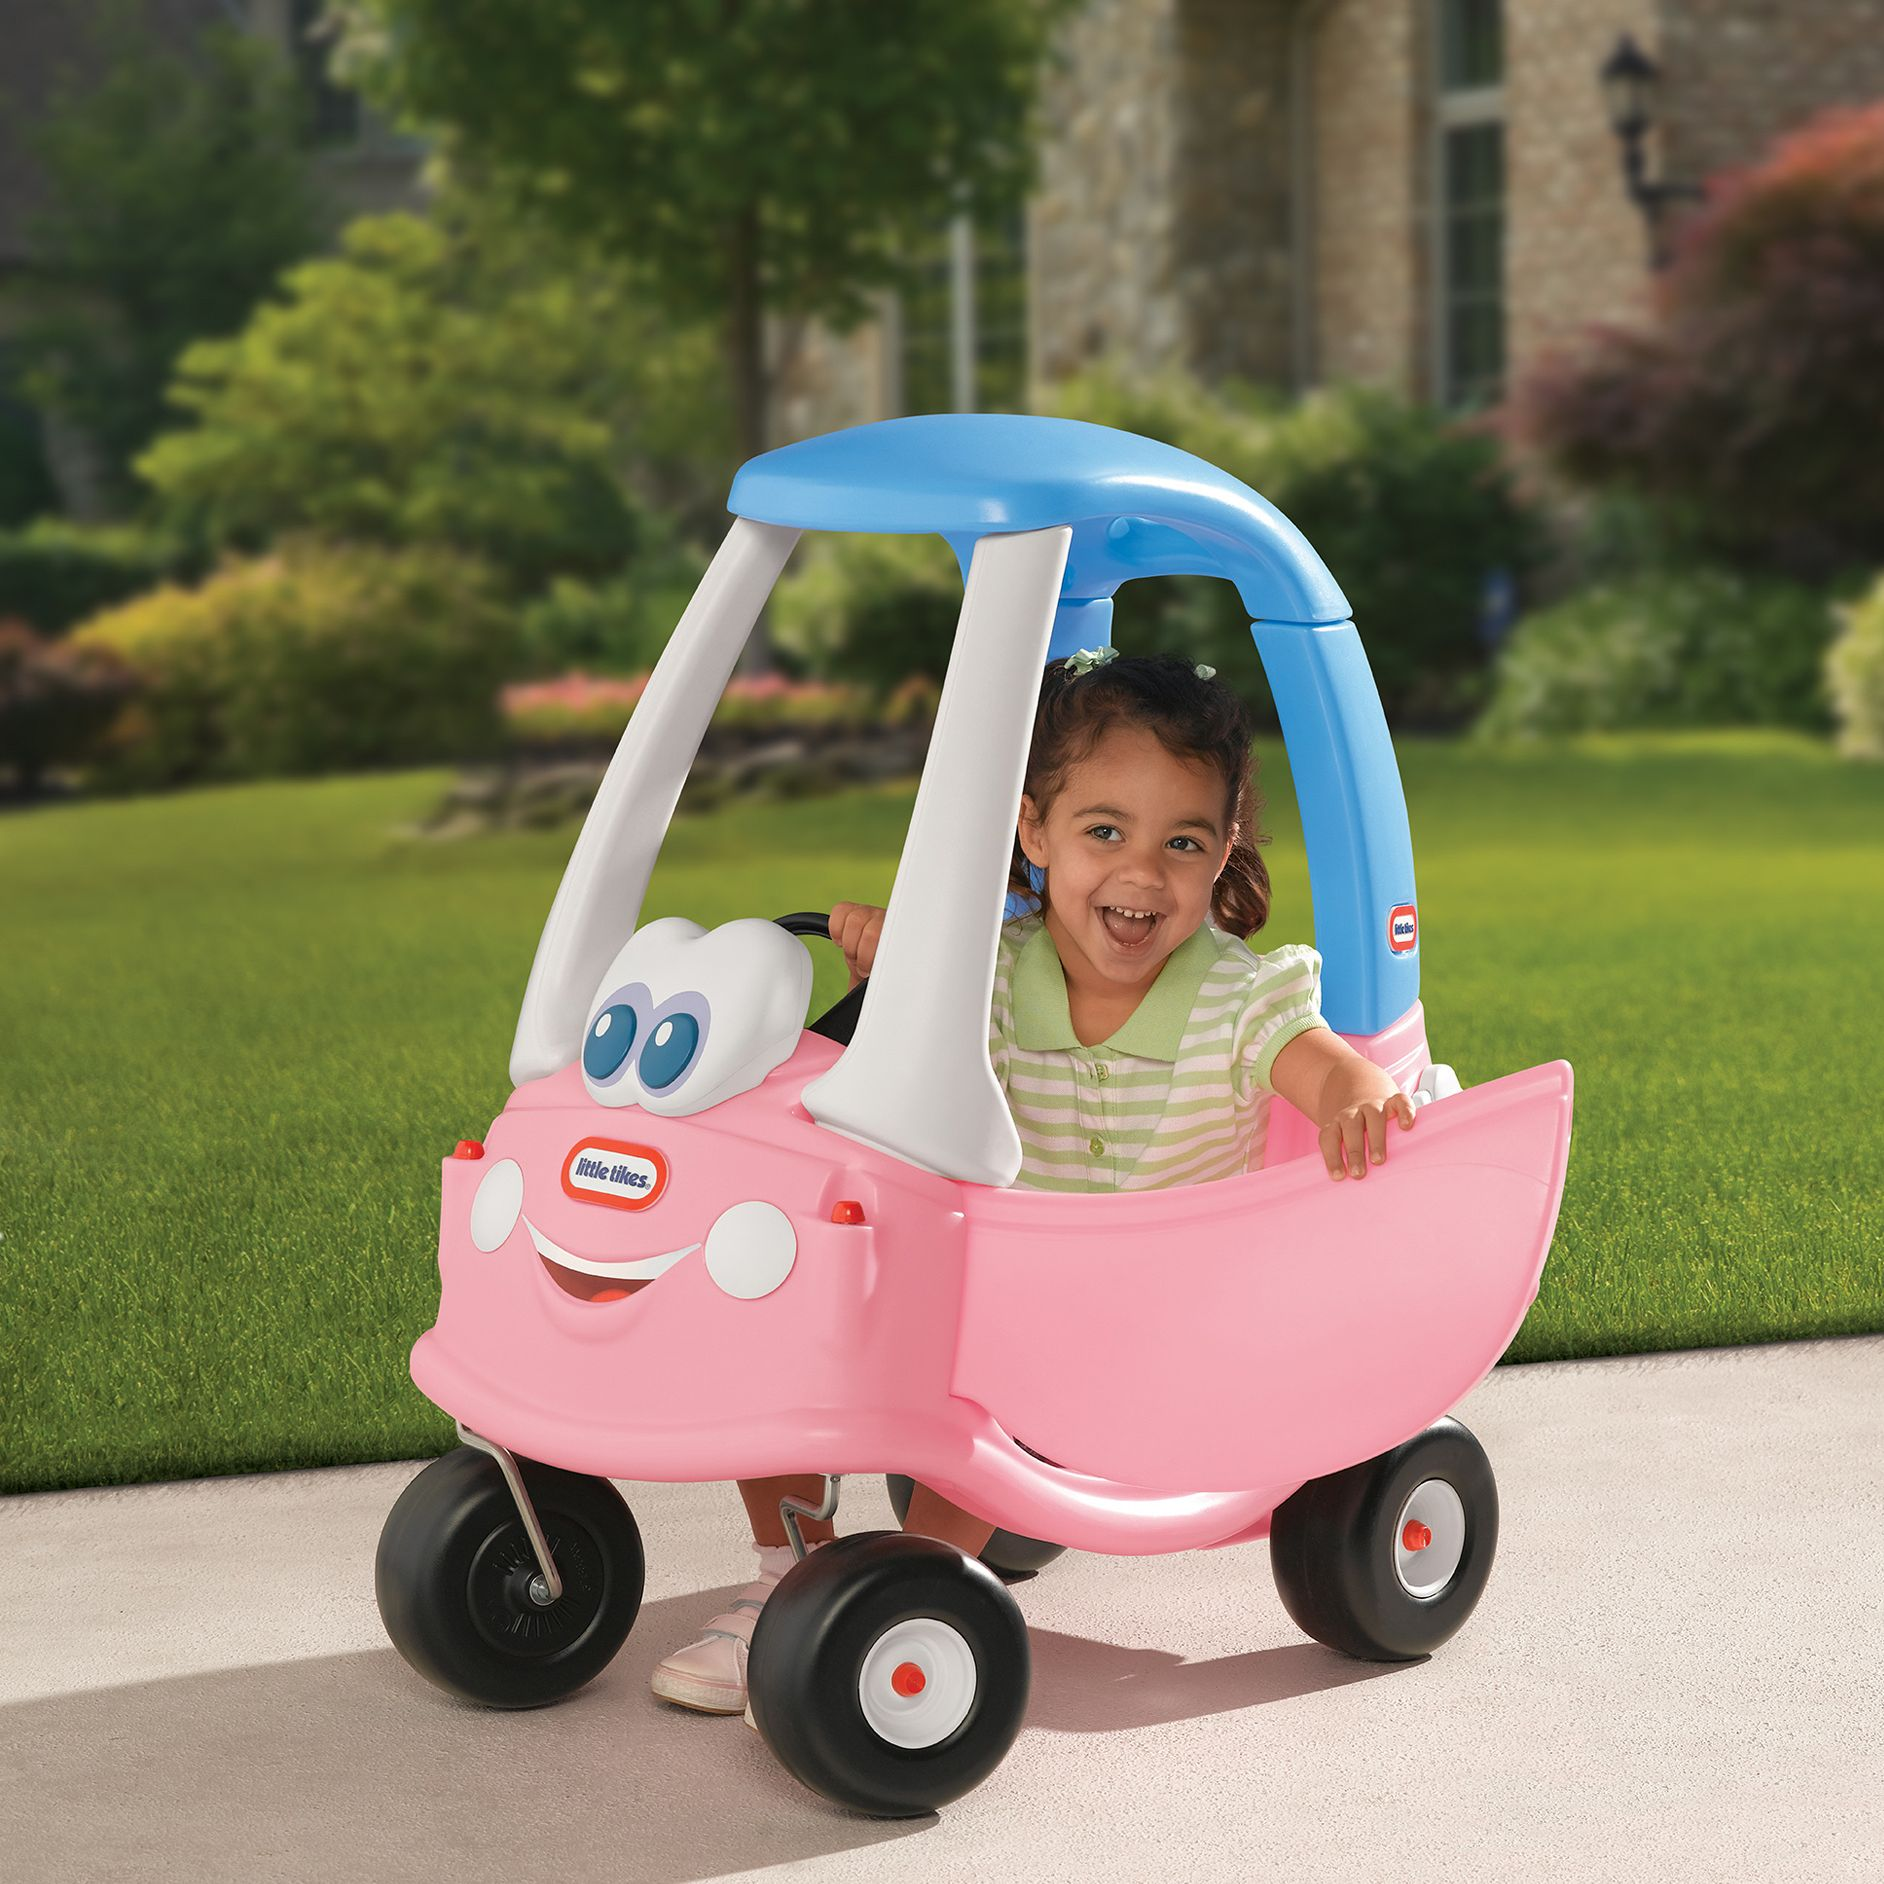 Little Tikes 30th Anniversary Edition Cozy Coupe, Pink